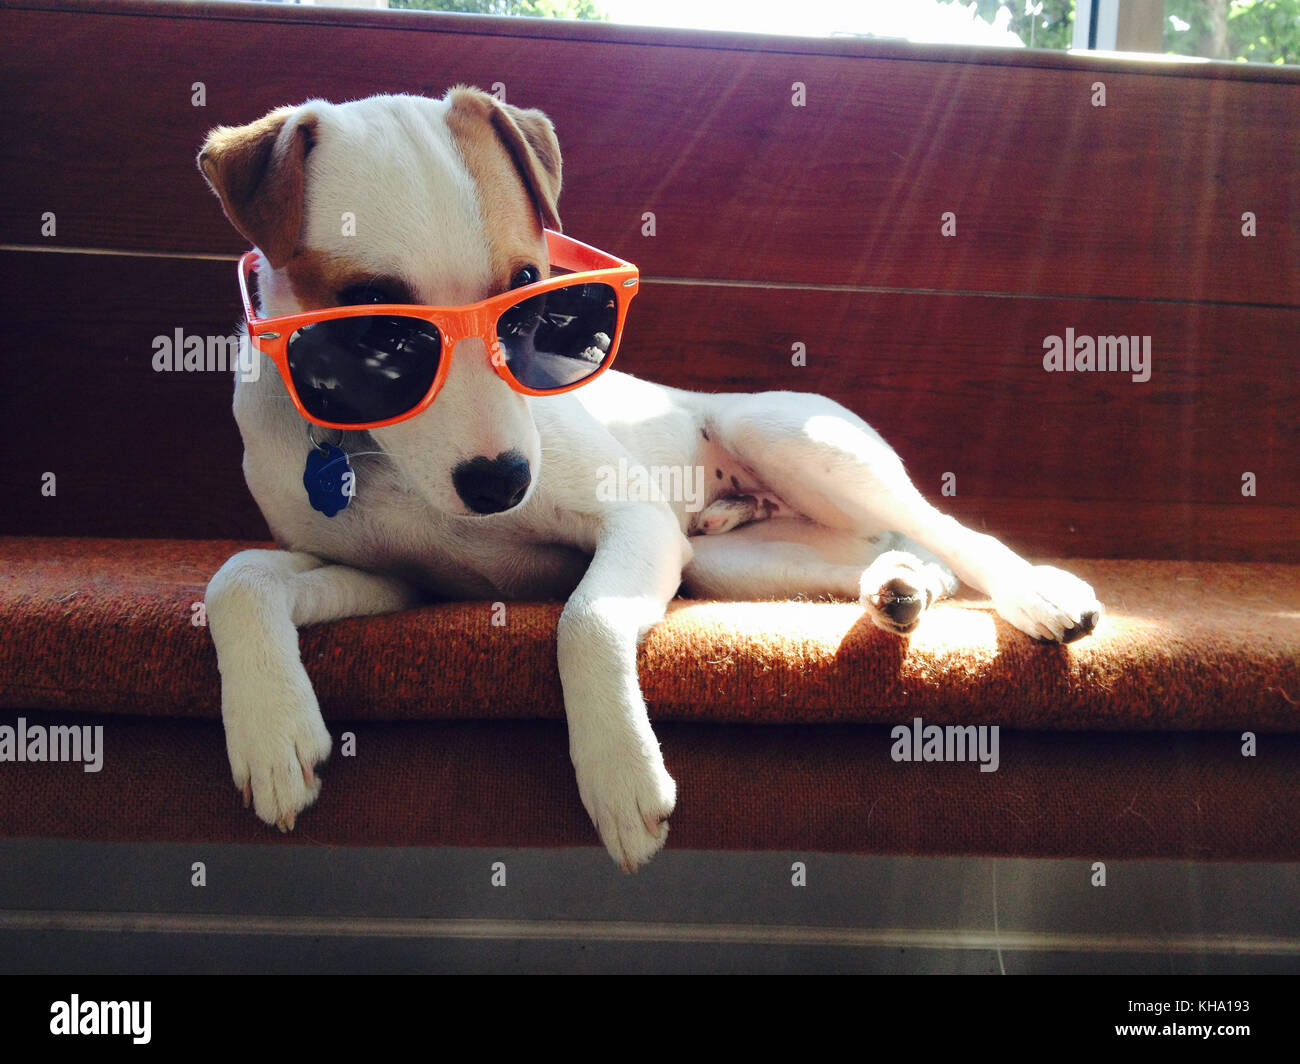 A small Jack Russel Terrier wears a sunglasses on couch Stock Photo